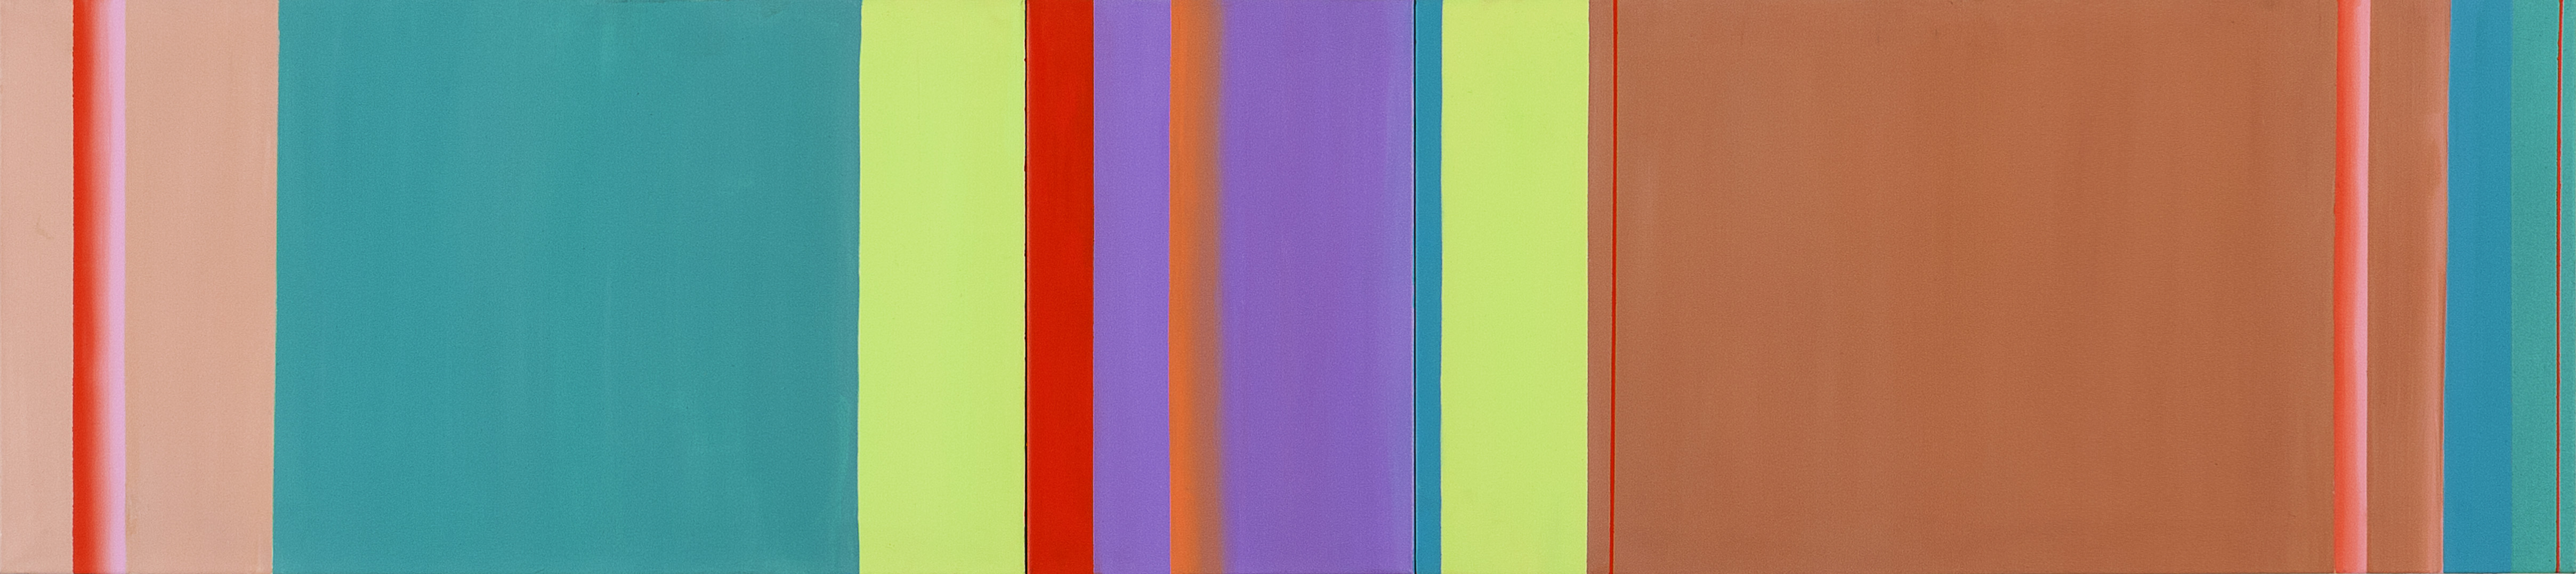 08. Hloa ¬ Quattrocento, 2007, akril na platnu / acrylic on canvas, 45 x 200 cm